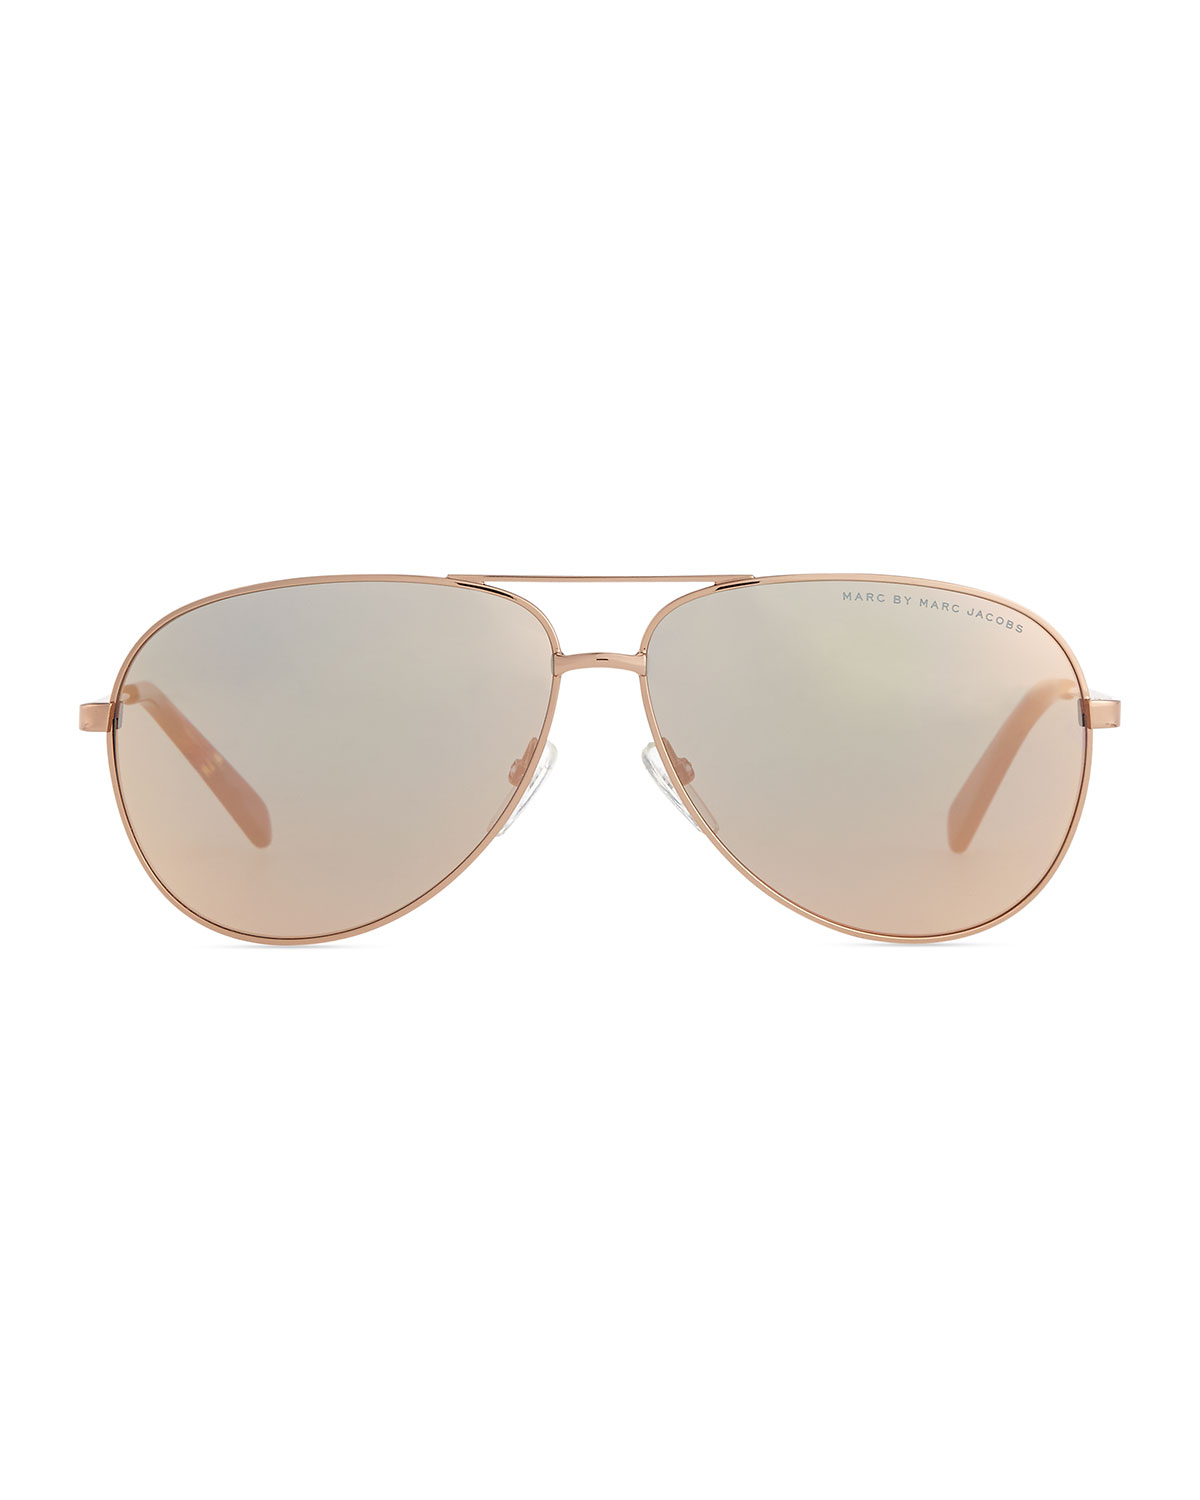 938aae2d7d Lyst - Marc By Marc Jacobs Rose Golden Aviator Sunglasses With ...